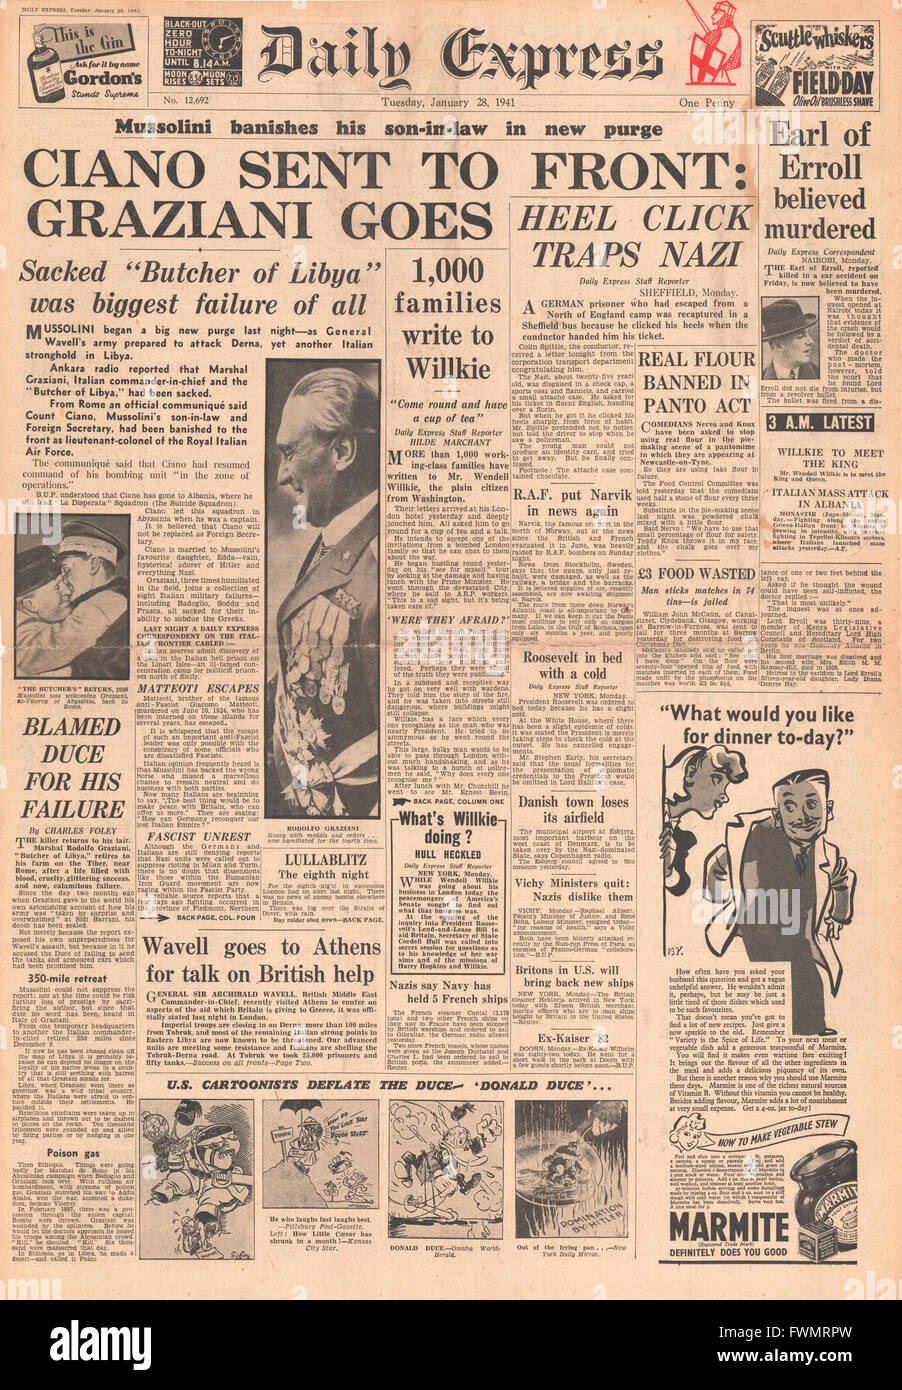 1941 front page Daily Express Mussolini sacks Count Ciano and Marshal Graziani and Lord Erroll shot in Kenya - Stock Image